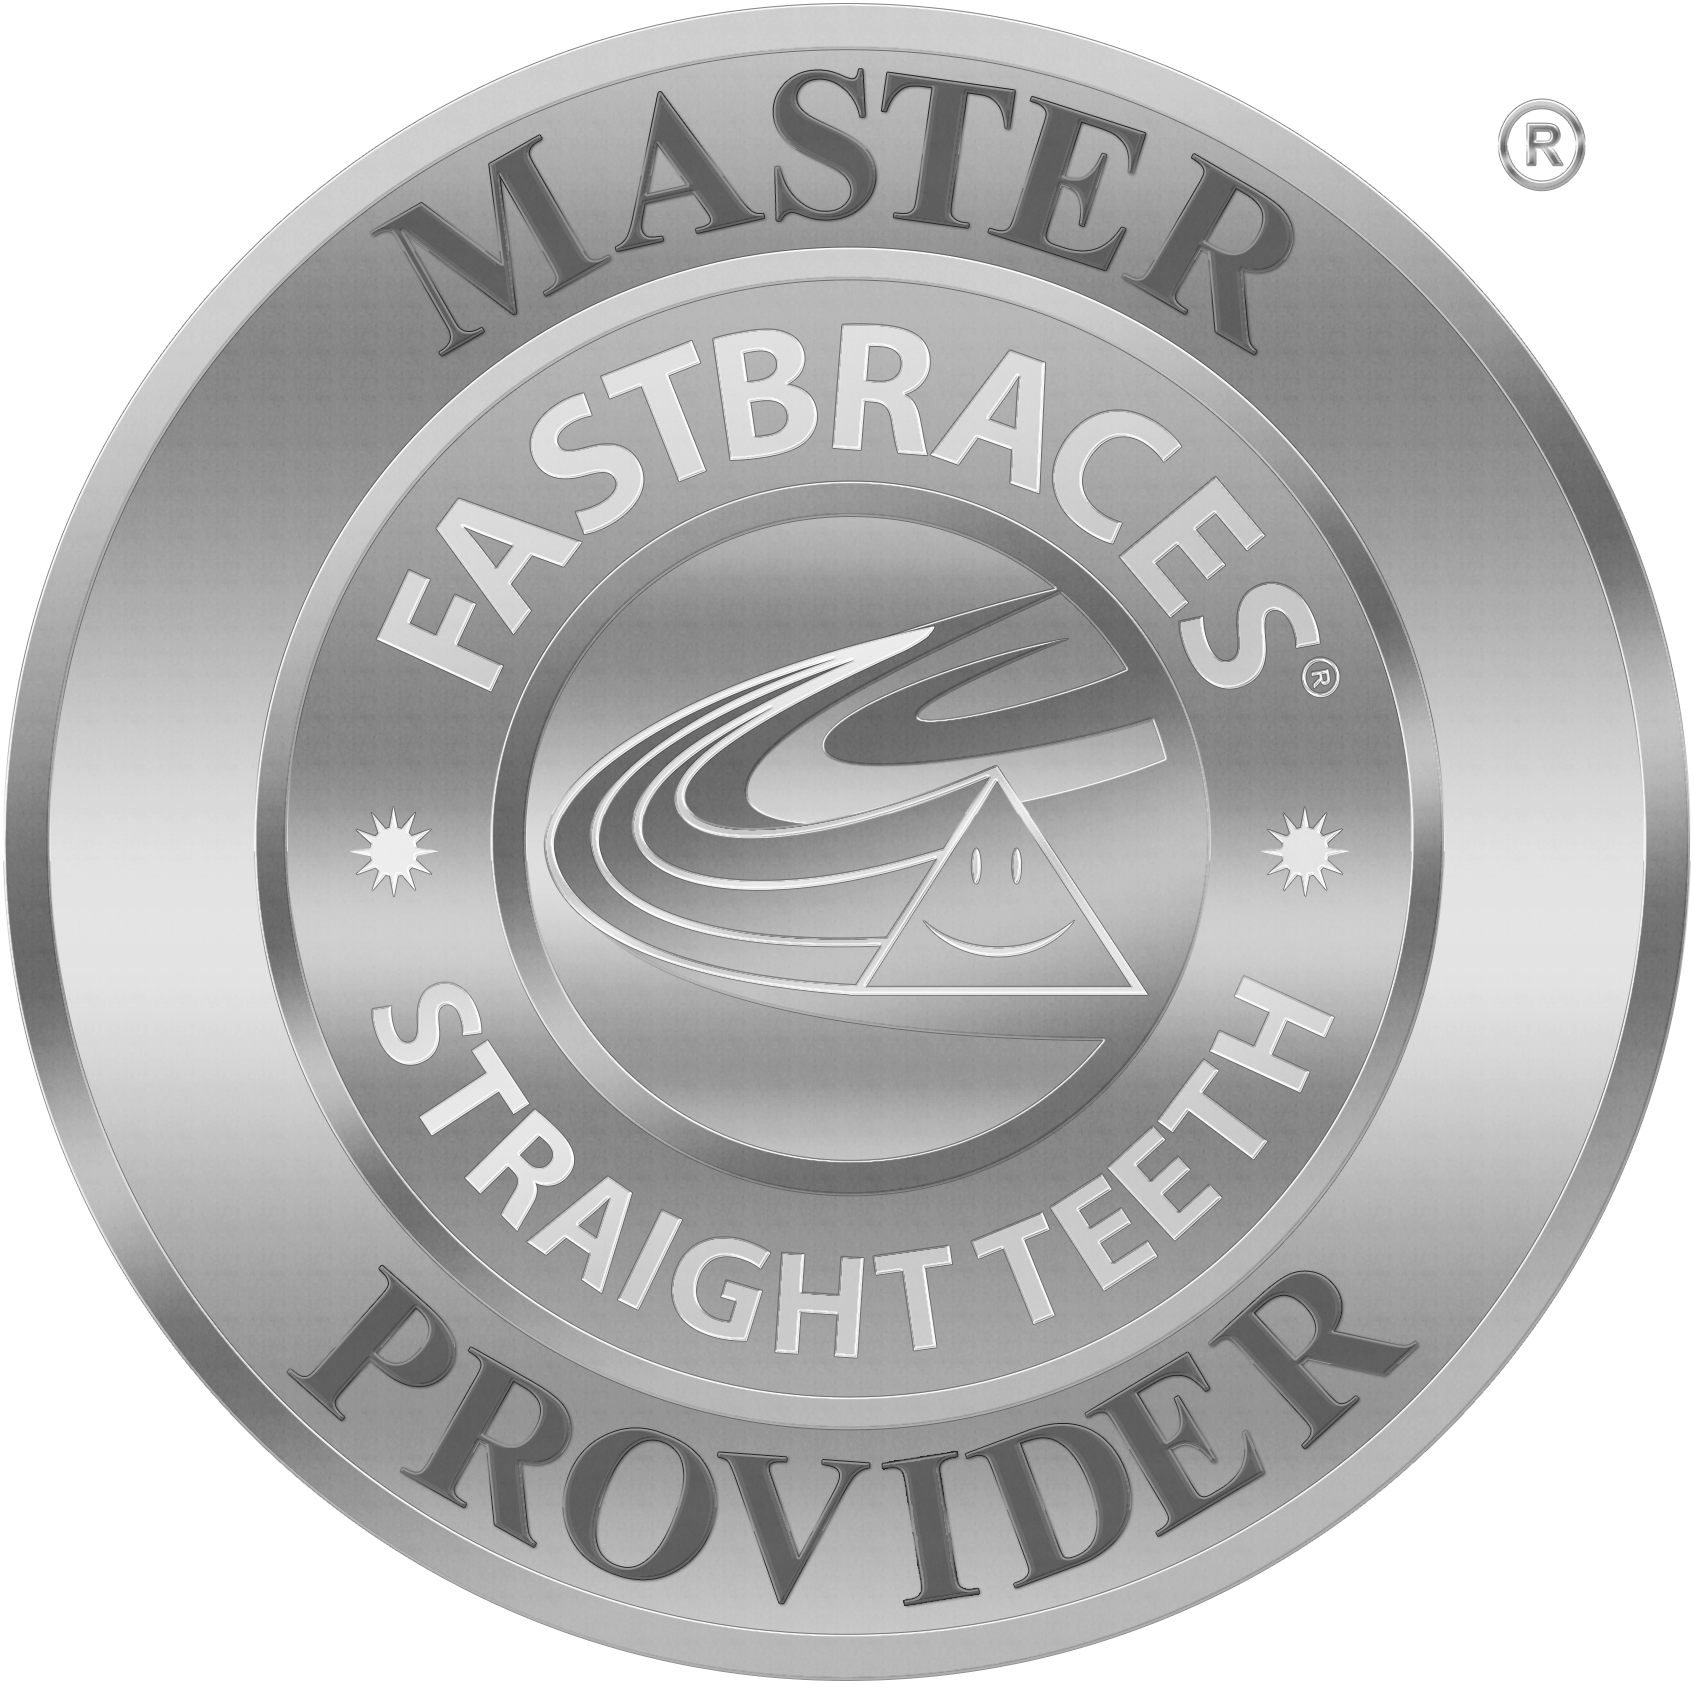 West Midlands Master Provider of FastBraces